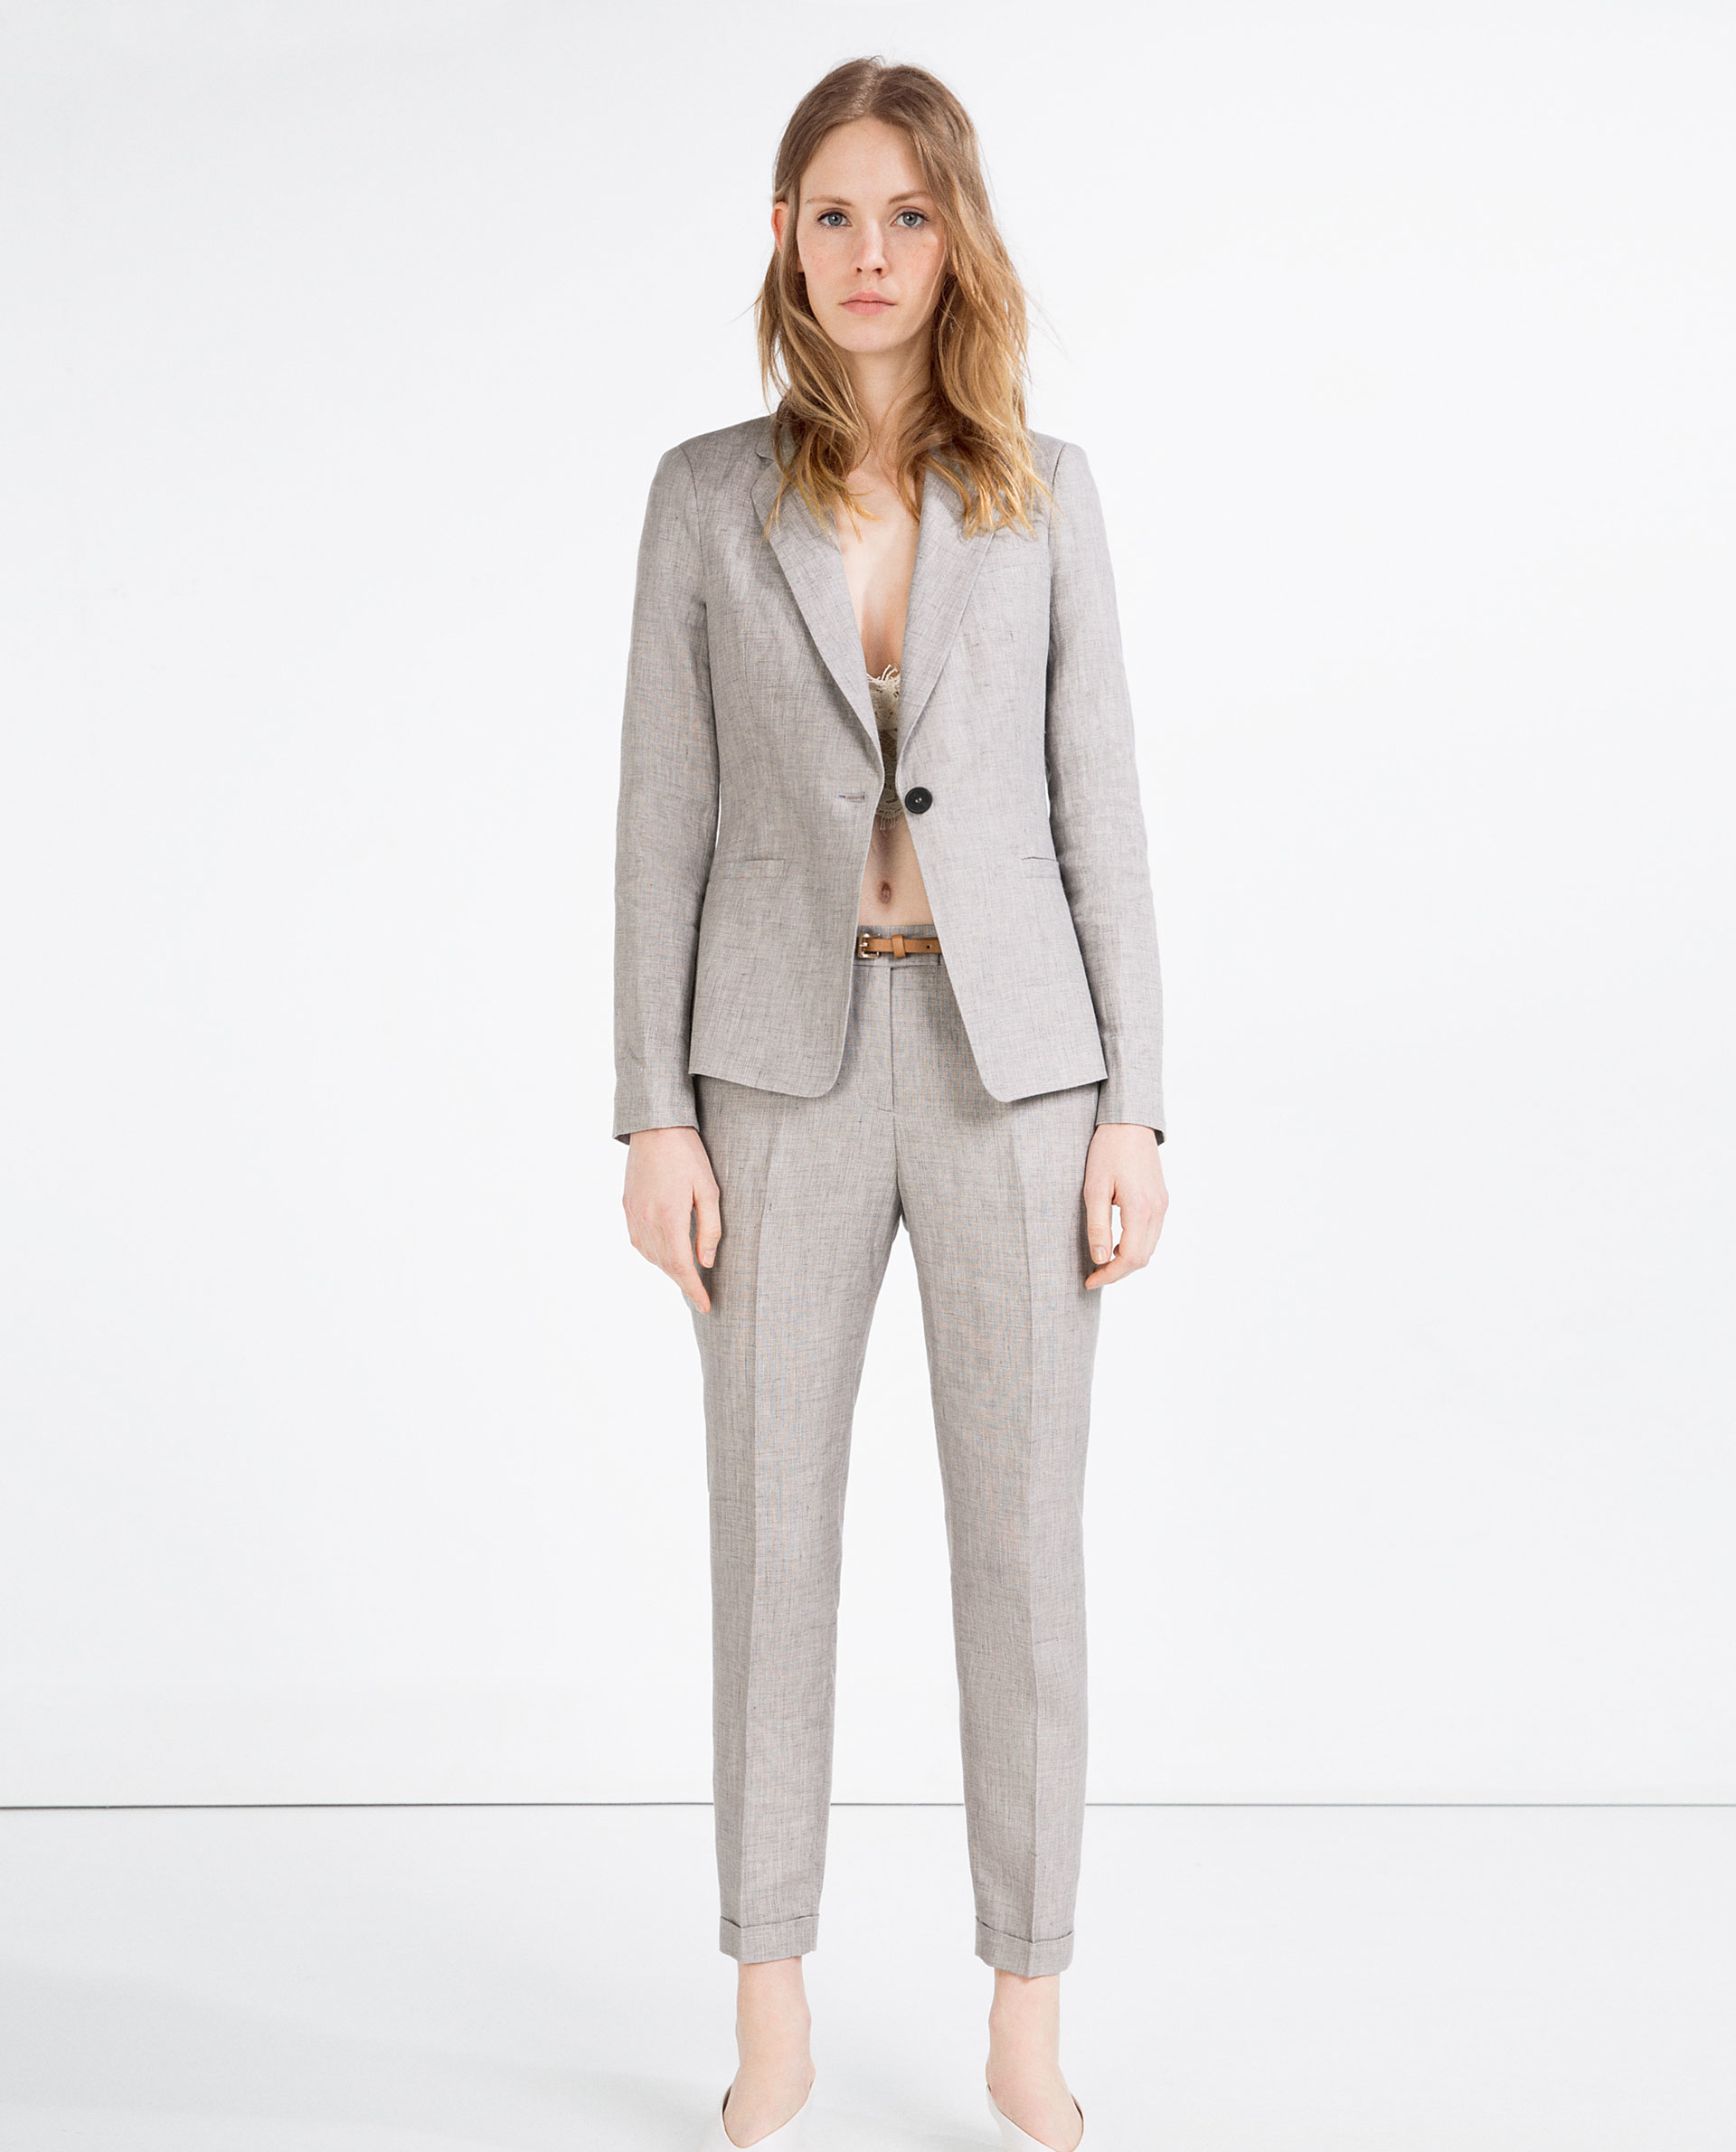 Awesome James Perse Summer Linen Pants In Gray Greystone  Lyst